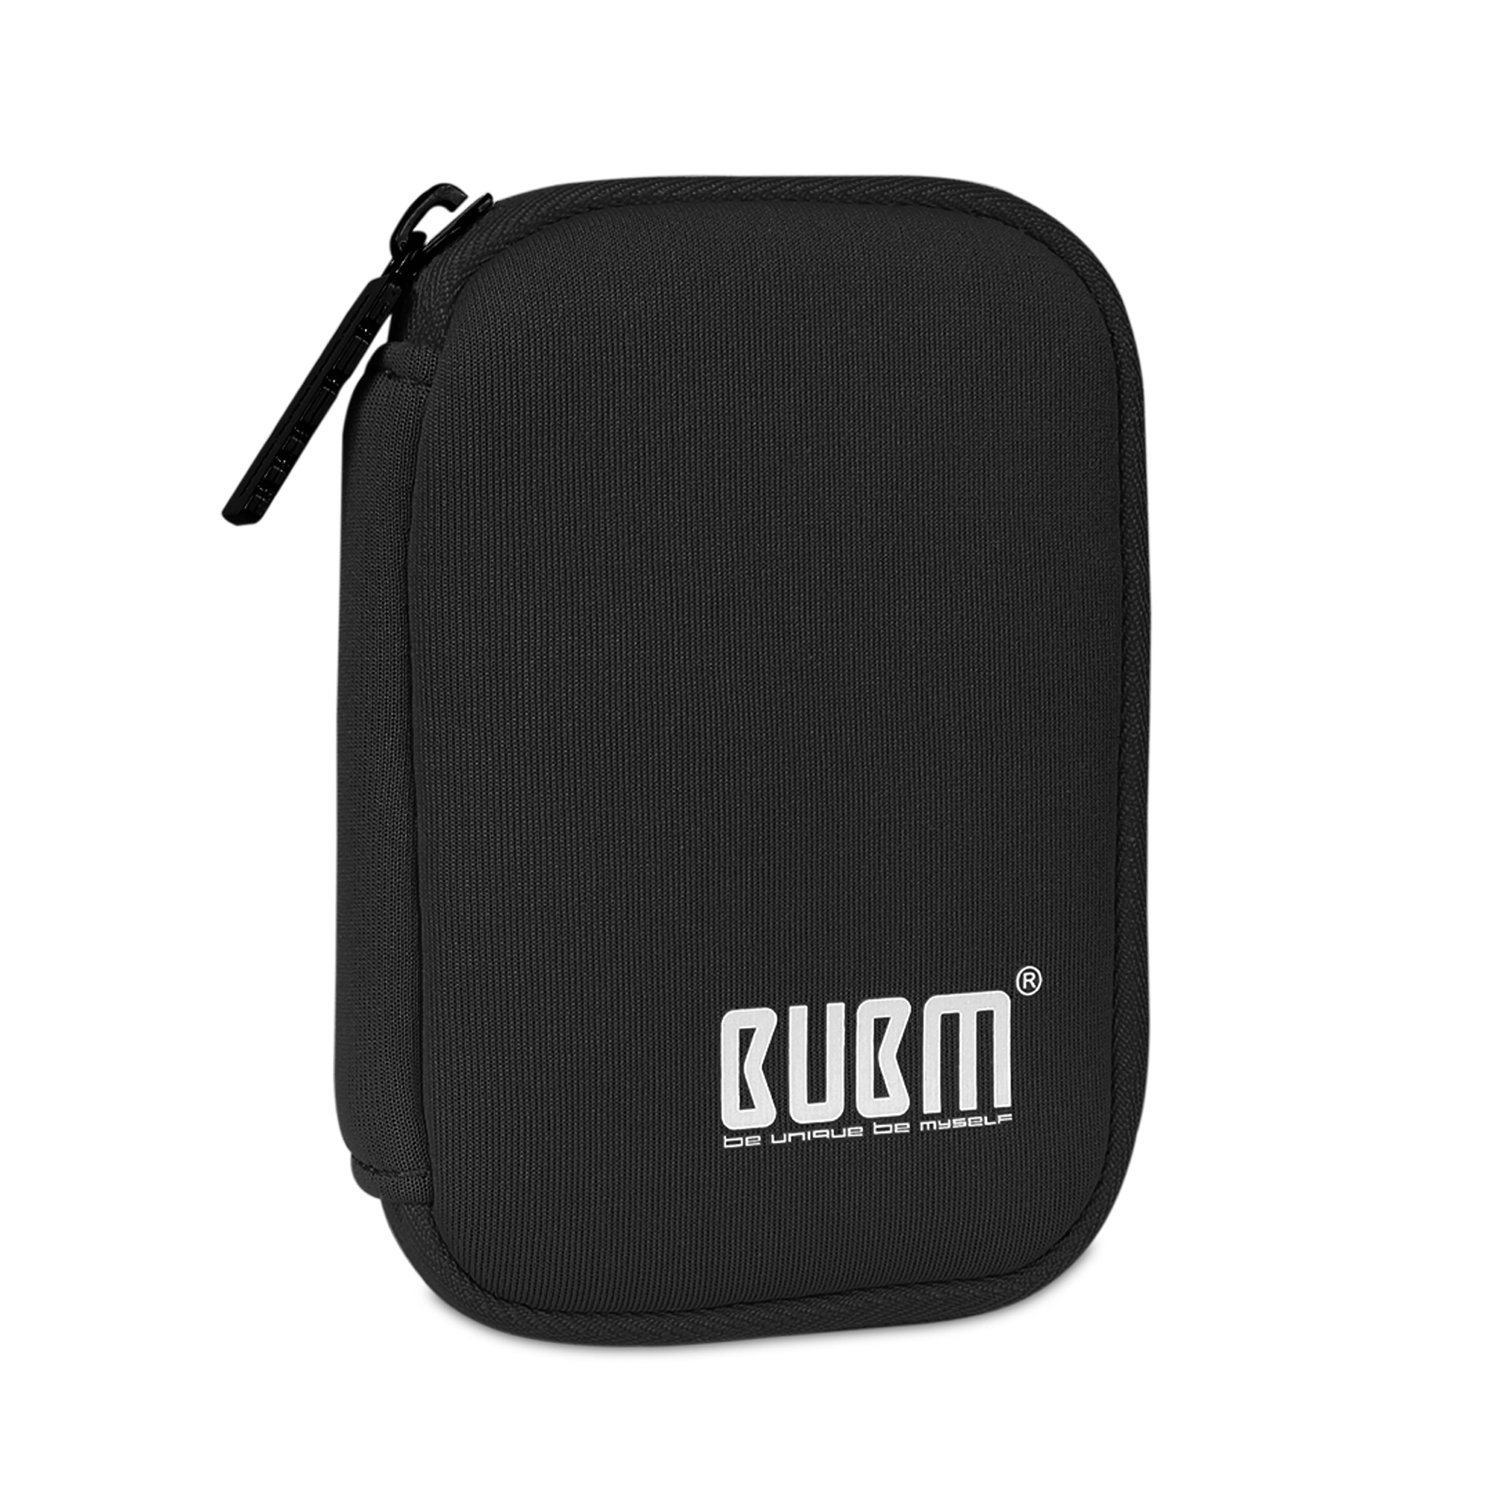 BUBM Portable 2.5-inch External Hard Drive Case, Padded Sleeve Bag, Compatible with WD/Western Digital/Seagate/Toshiba/Buffalo/Samsung and More (Small, Black)